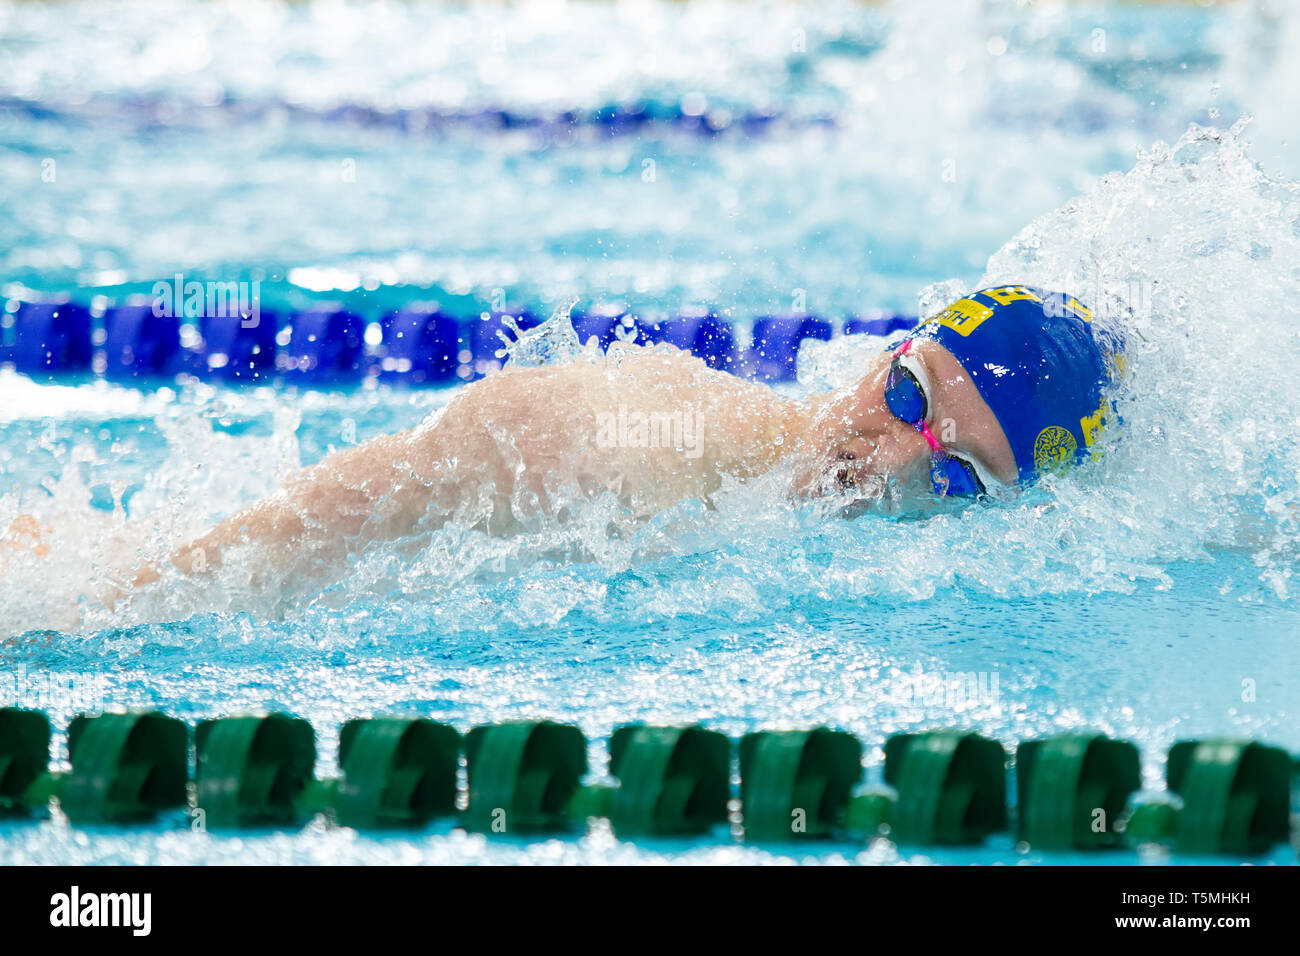 William Ryley (University of Bath) in action during the men's open 1,500 metres freestyle last heat, during Day 3 of the 2019 British Swimming Champio - Stock Image